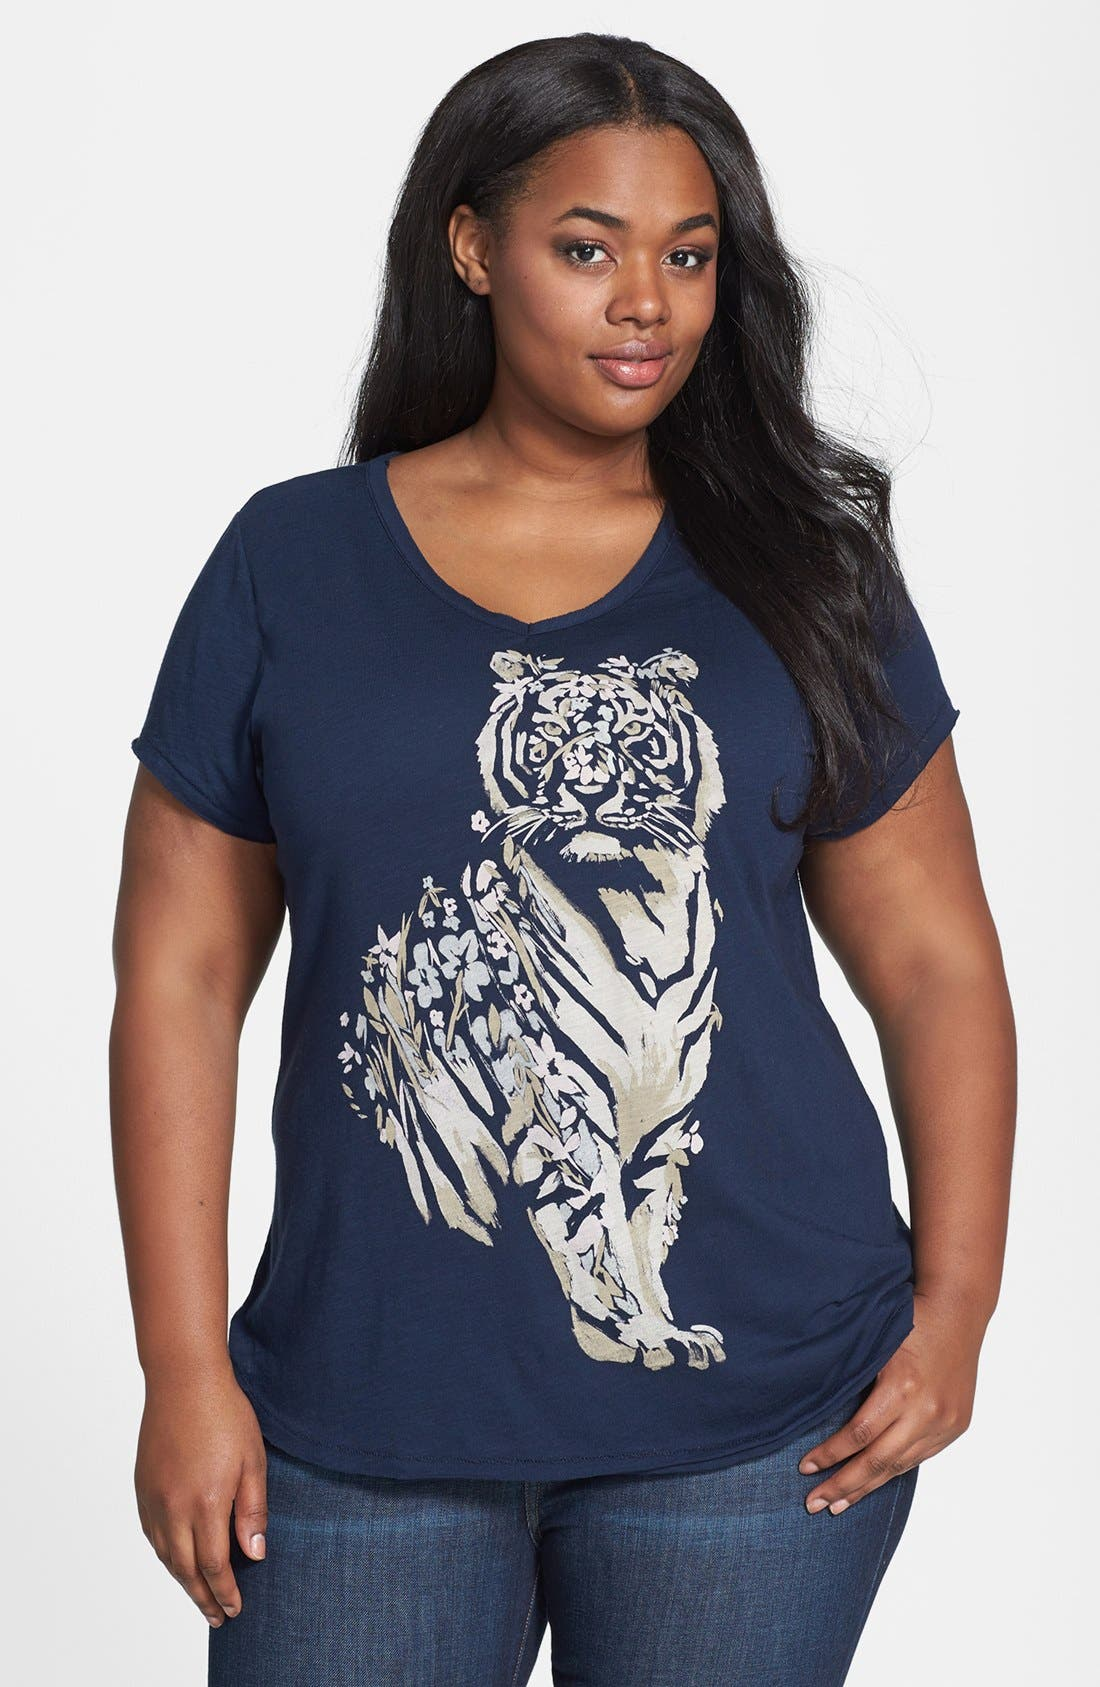 Alternate Image 1 Selected - Lucky Brand Floral Tiger Tee (Plus Size)